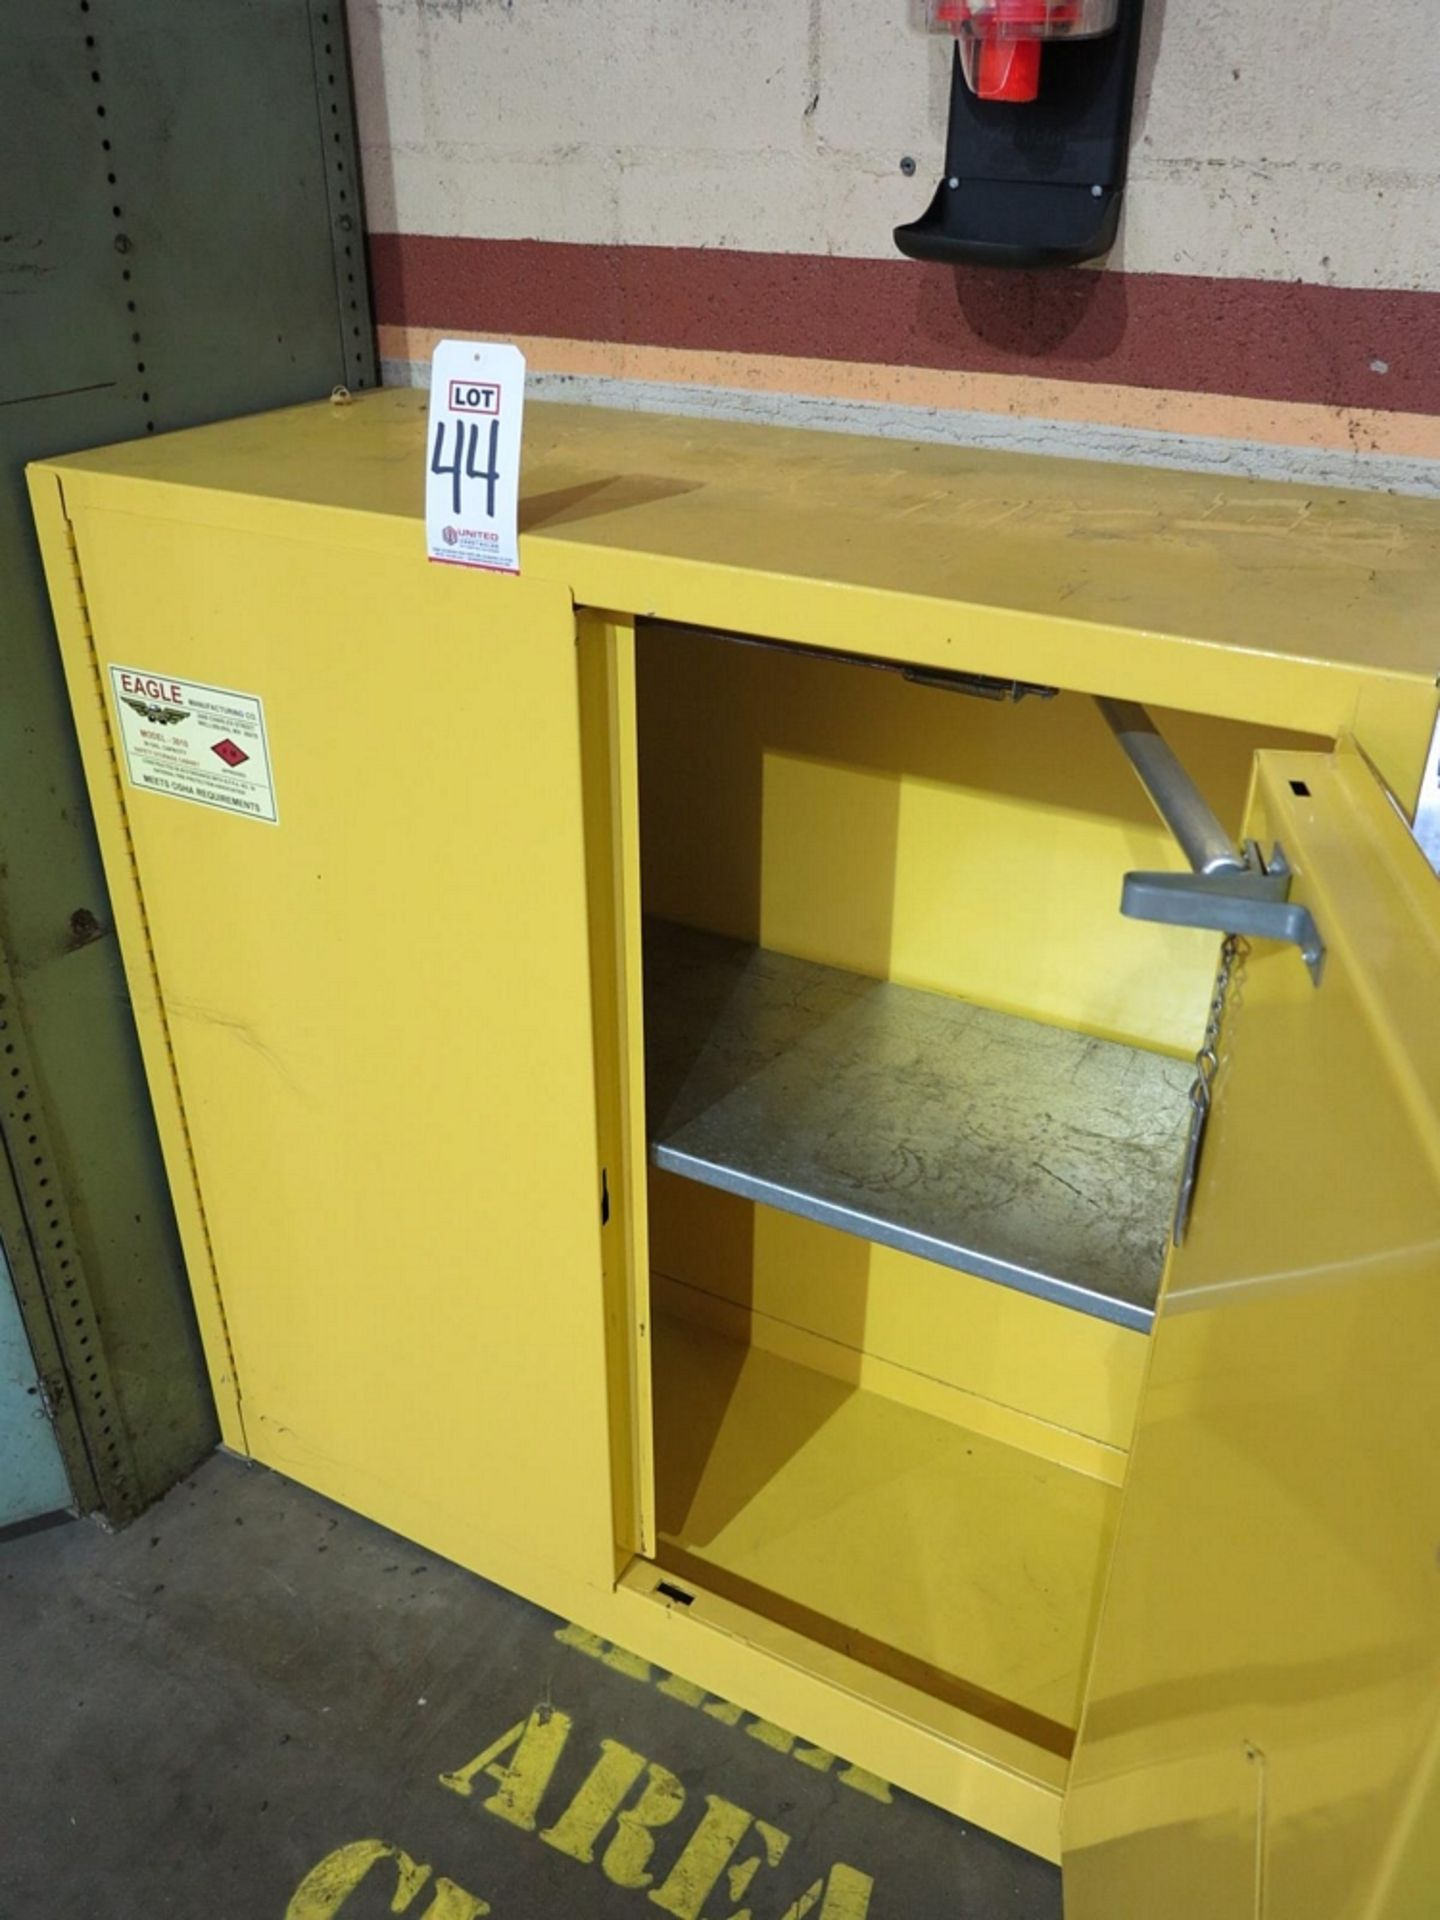 Lot 44 - EAGLE MFG. FLAMMABLE LIQUIDS CABINET, MODEL 3010, 30 GALLON CAPACITY